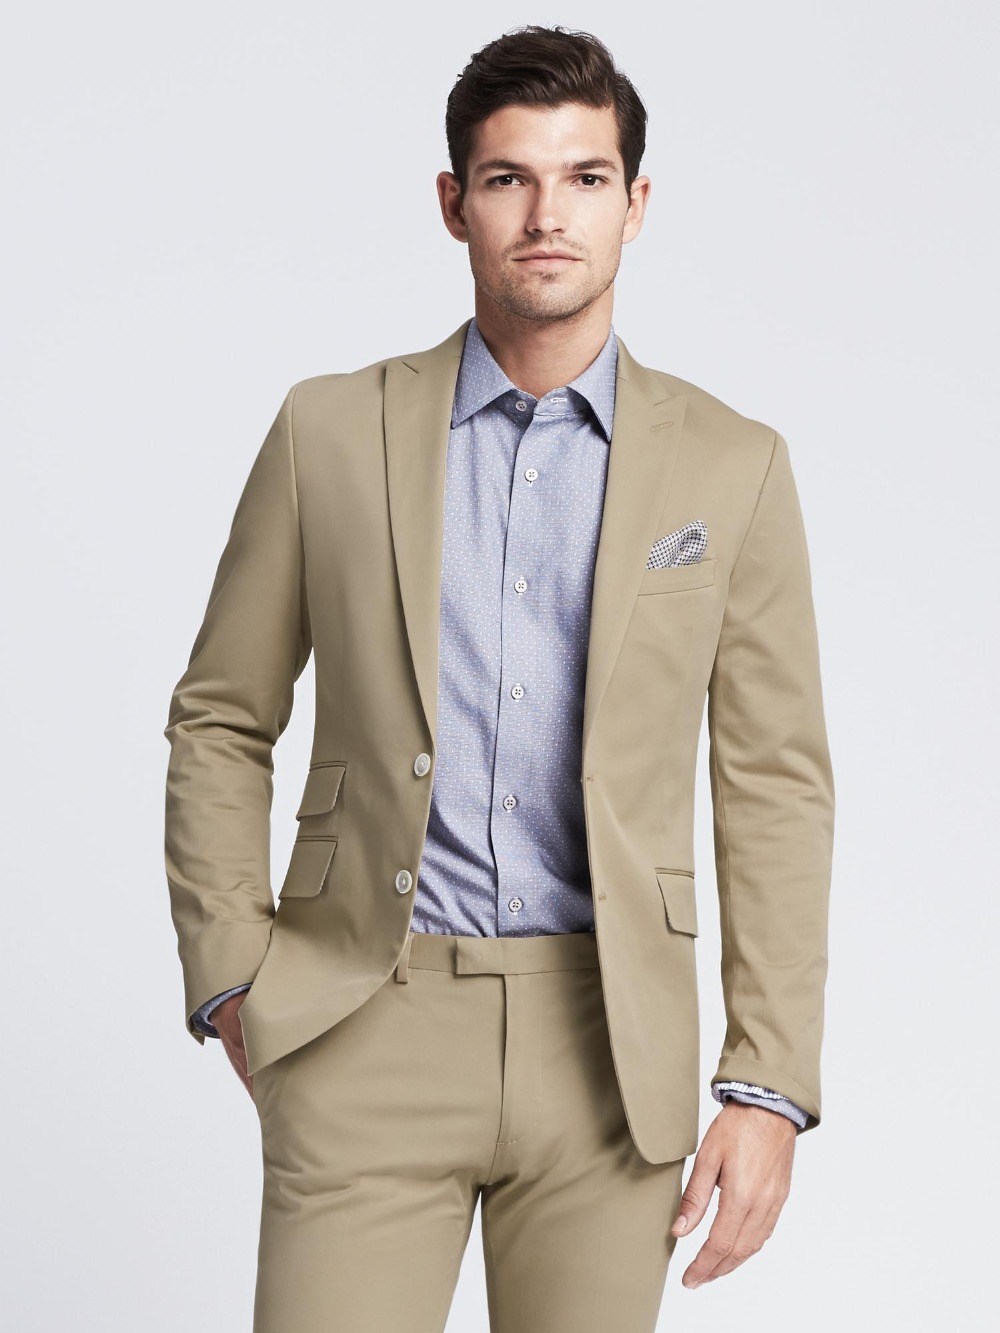 Compare Prices on Khaki Suit Wedding- Online Shopping/Buy Low